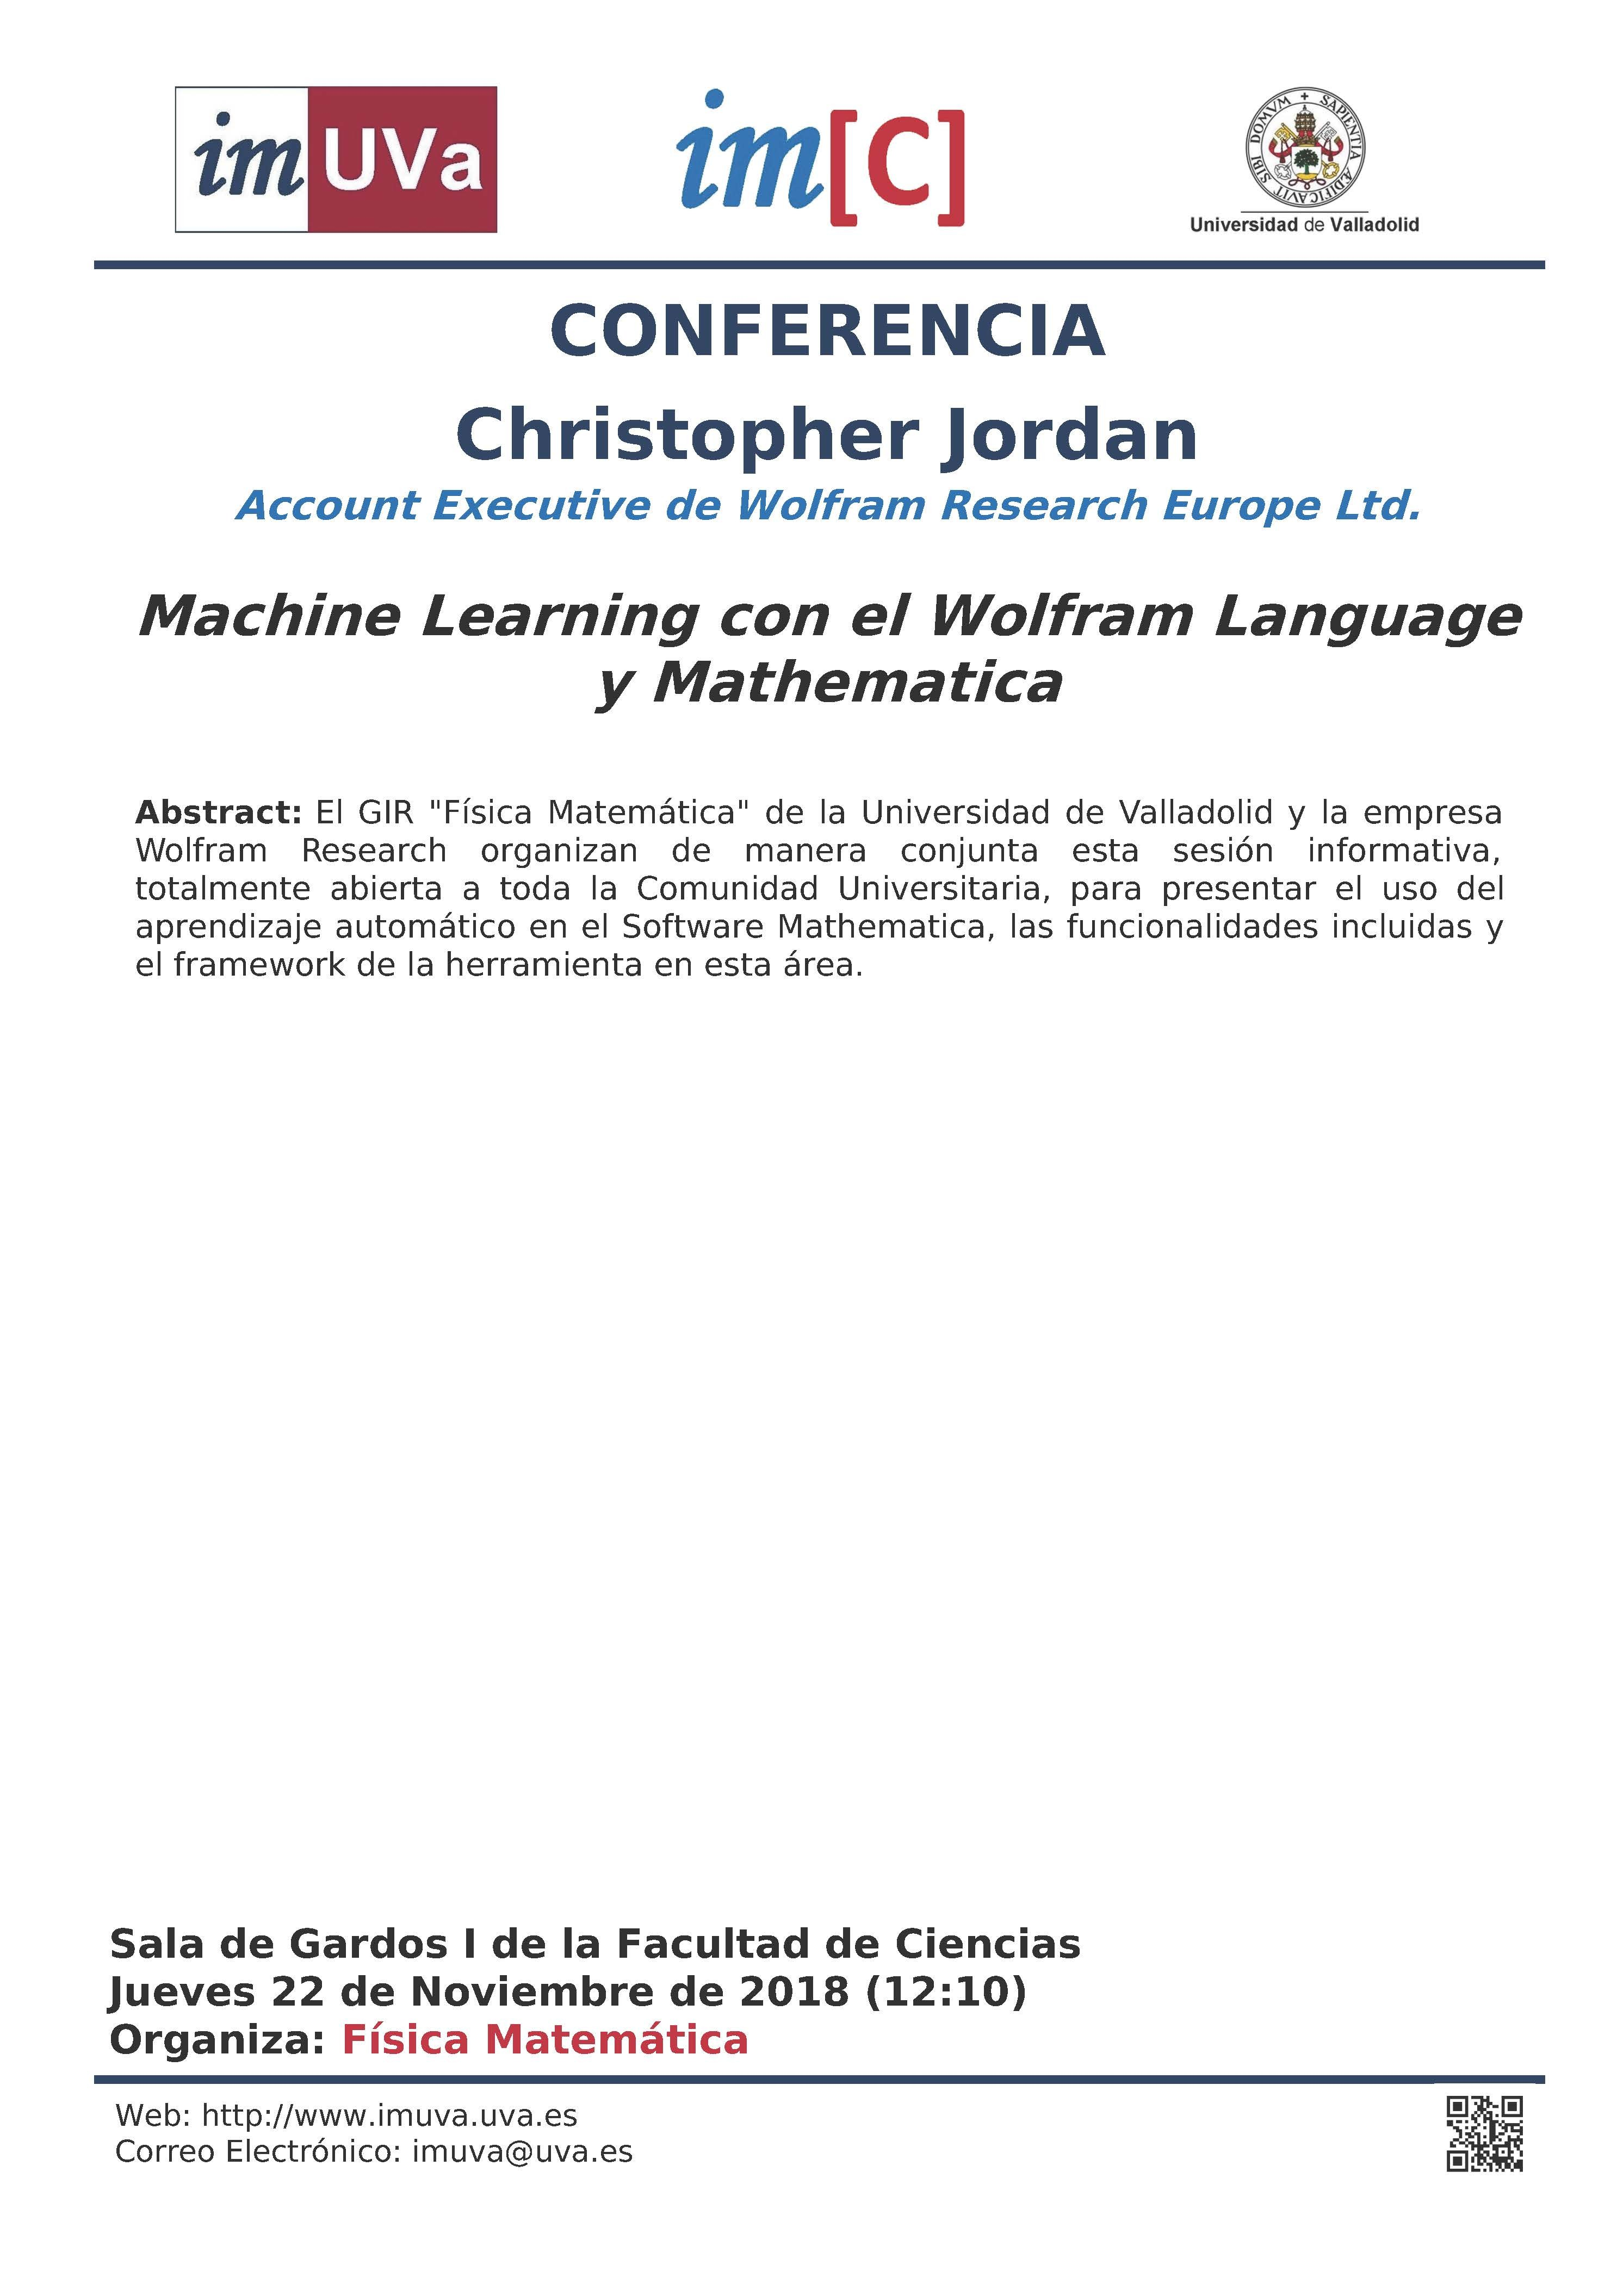 Conferencia de CHRISTOPHER JORDAN